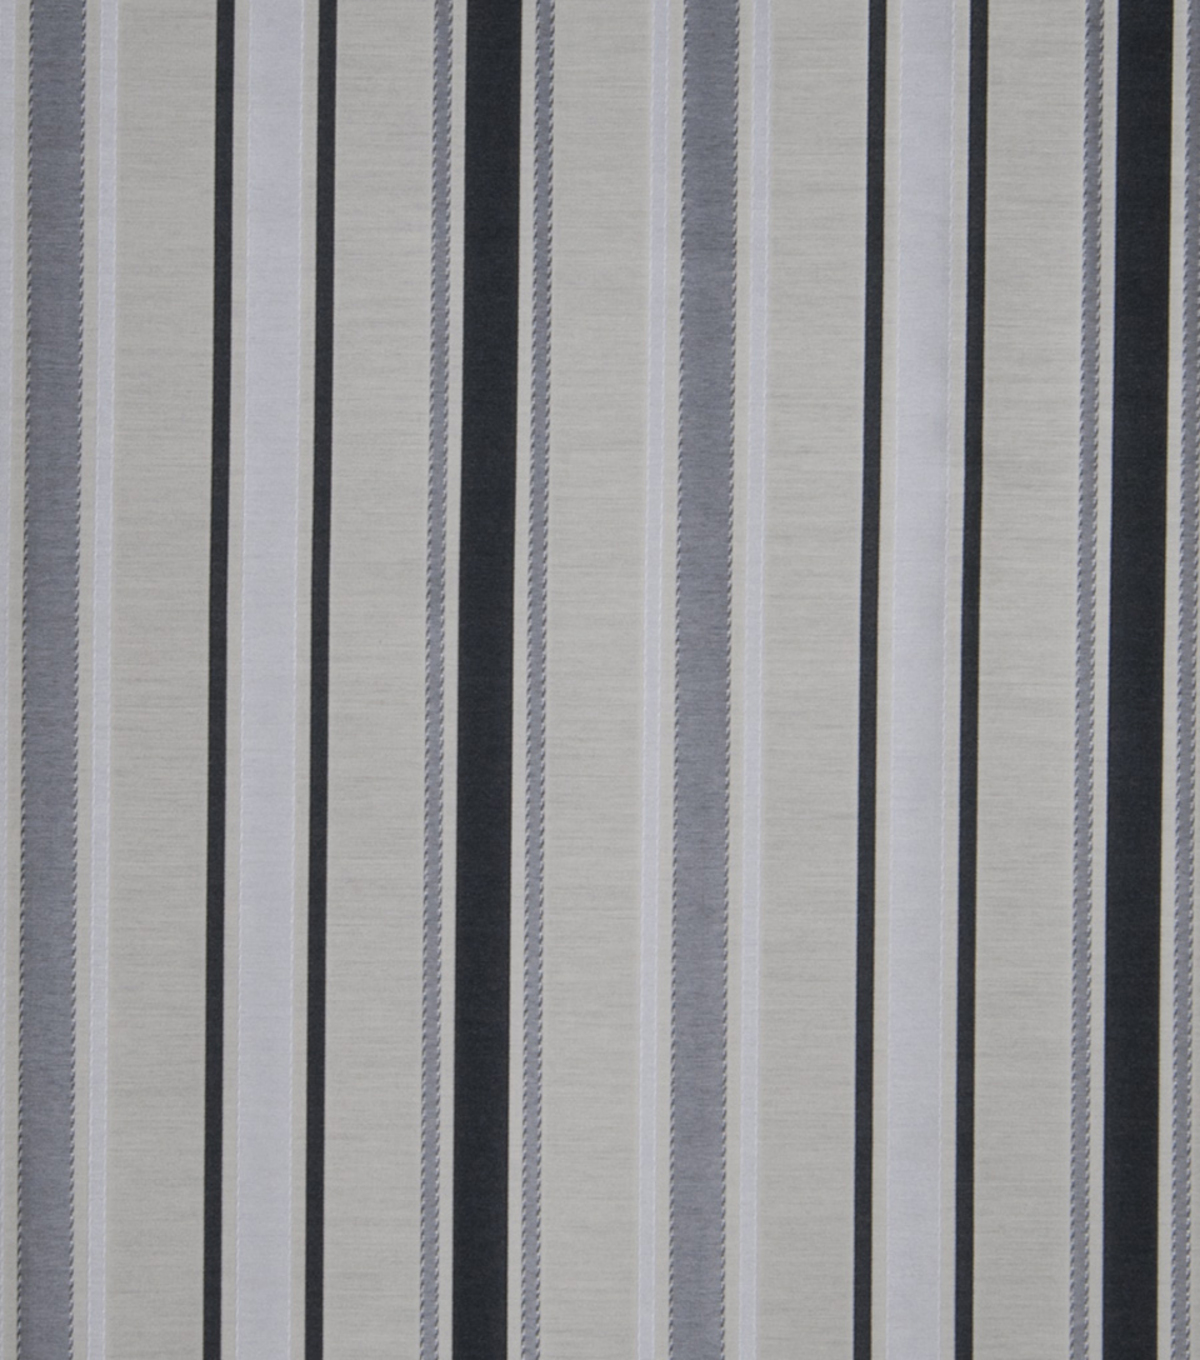 Home Decor 8\u0022x8\u0022 Fabric Swatch-Print Fabric Eaton Square Janet Silver